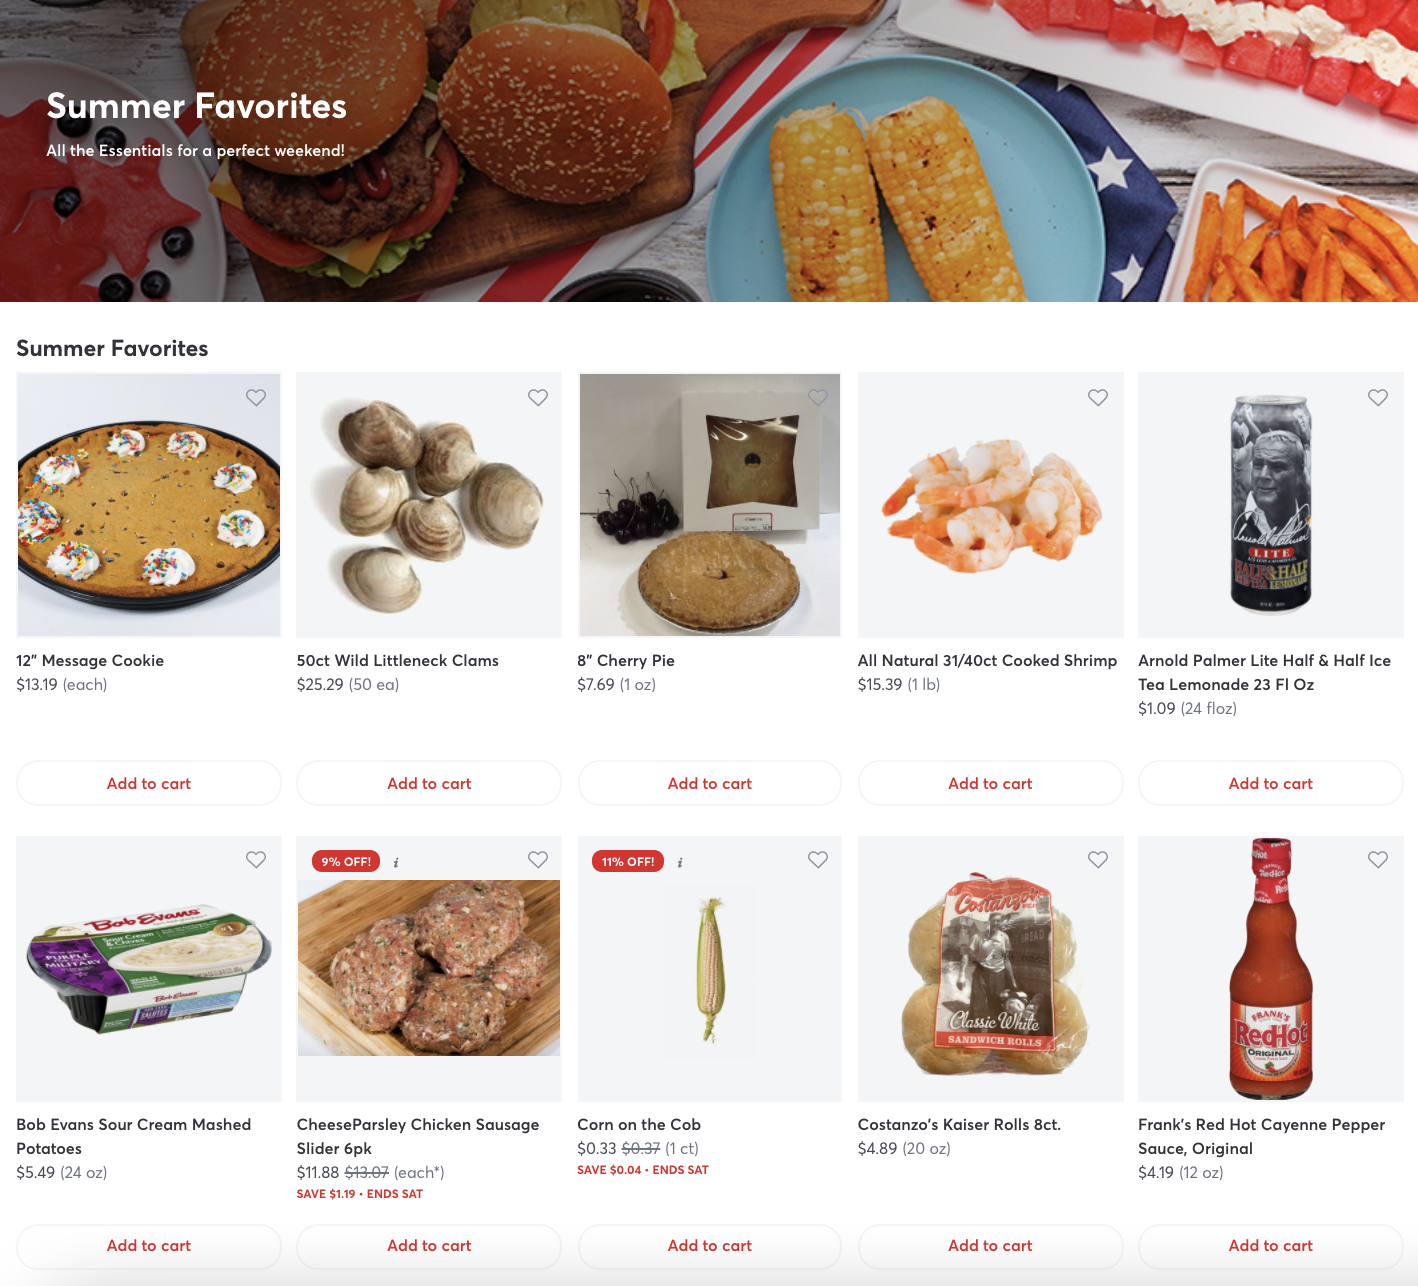 Picture of online grocery store advertising summer products